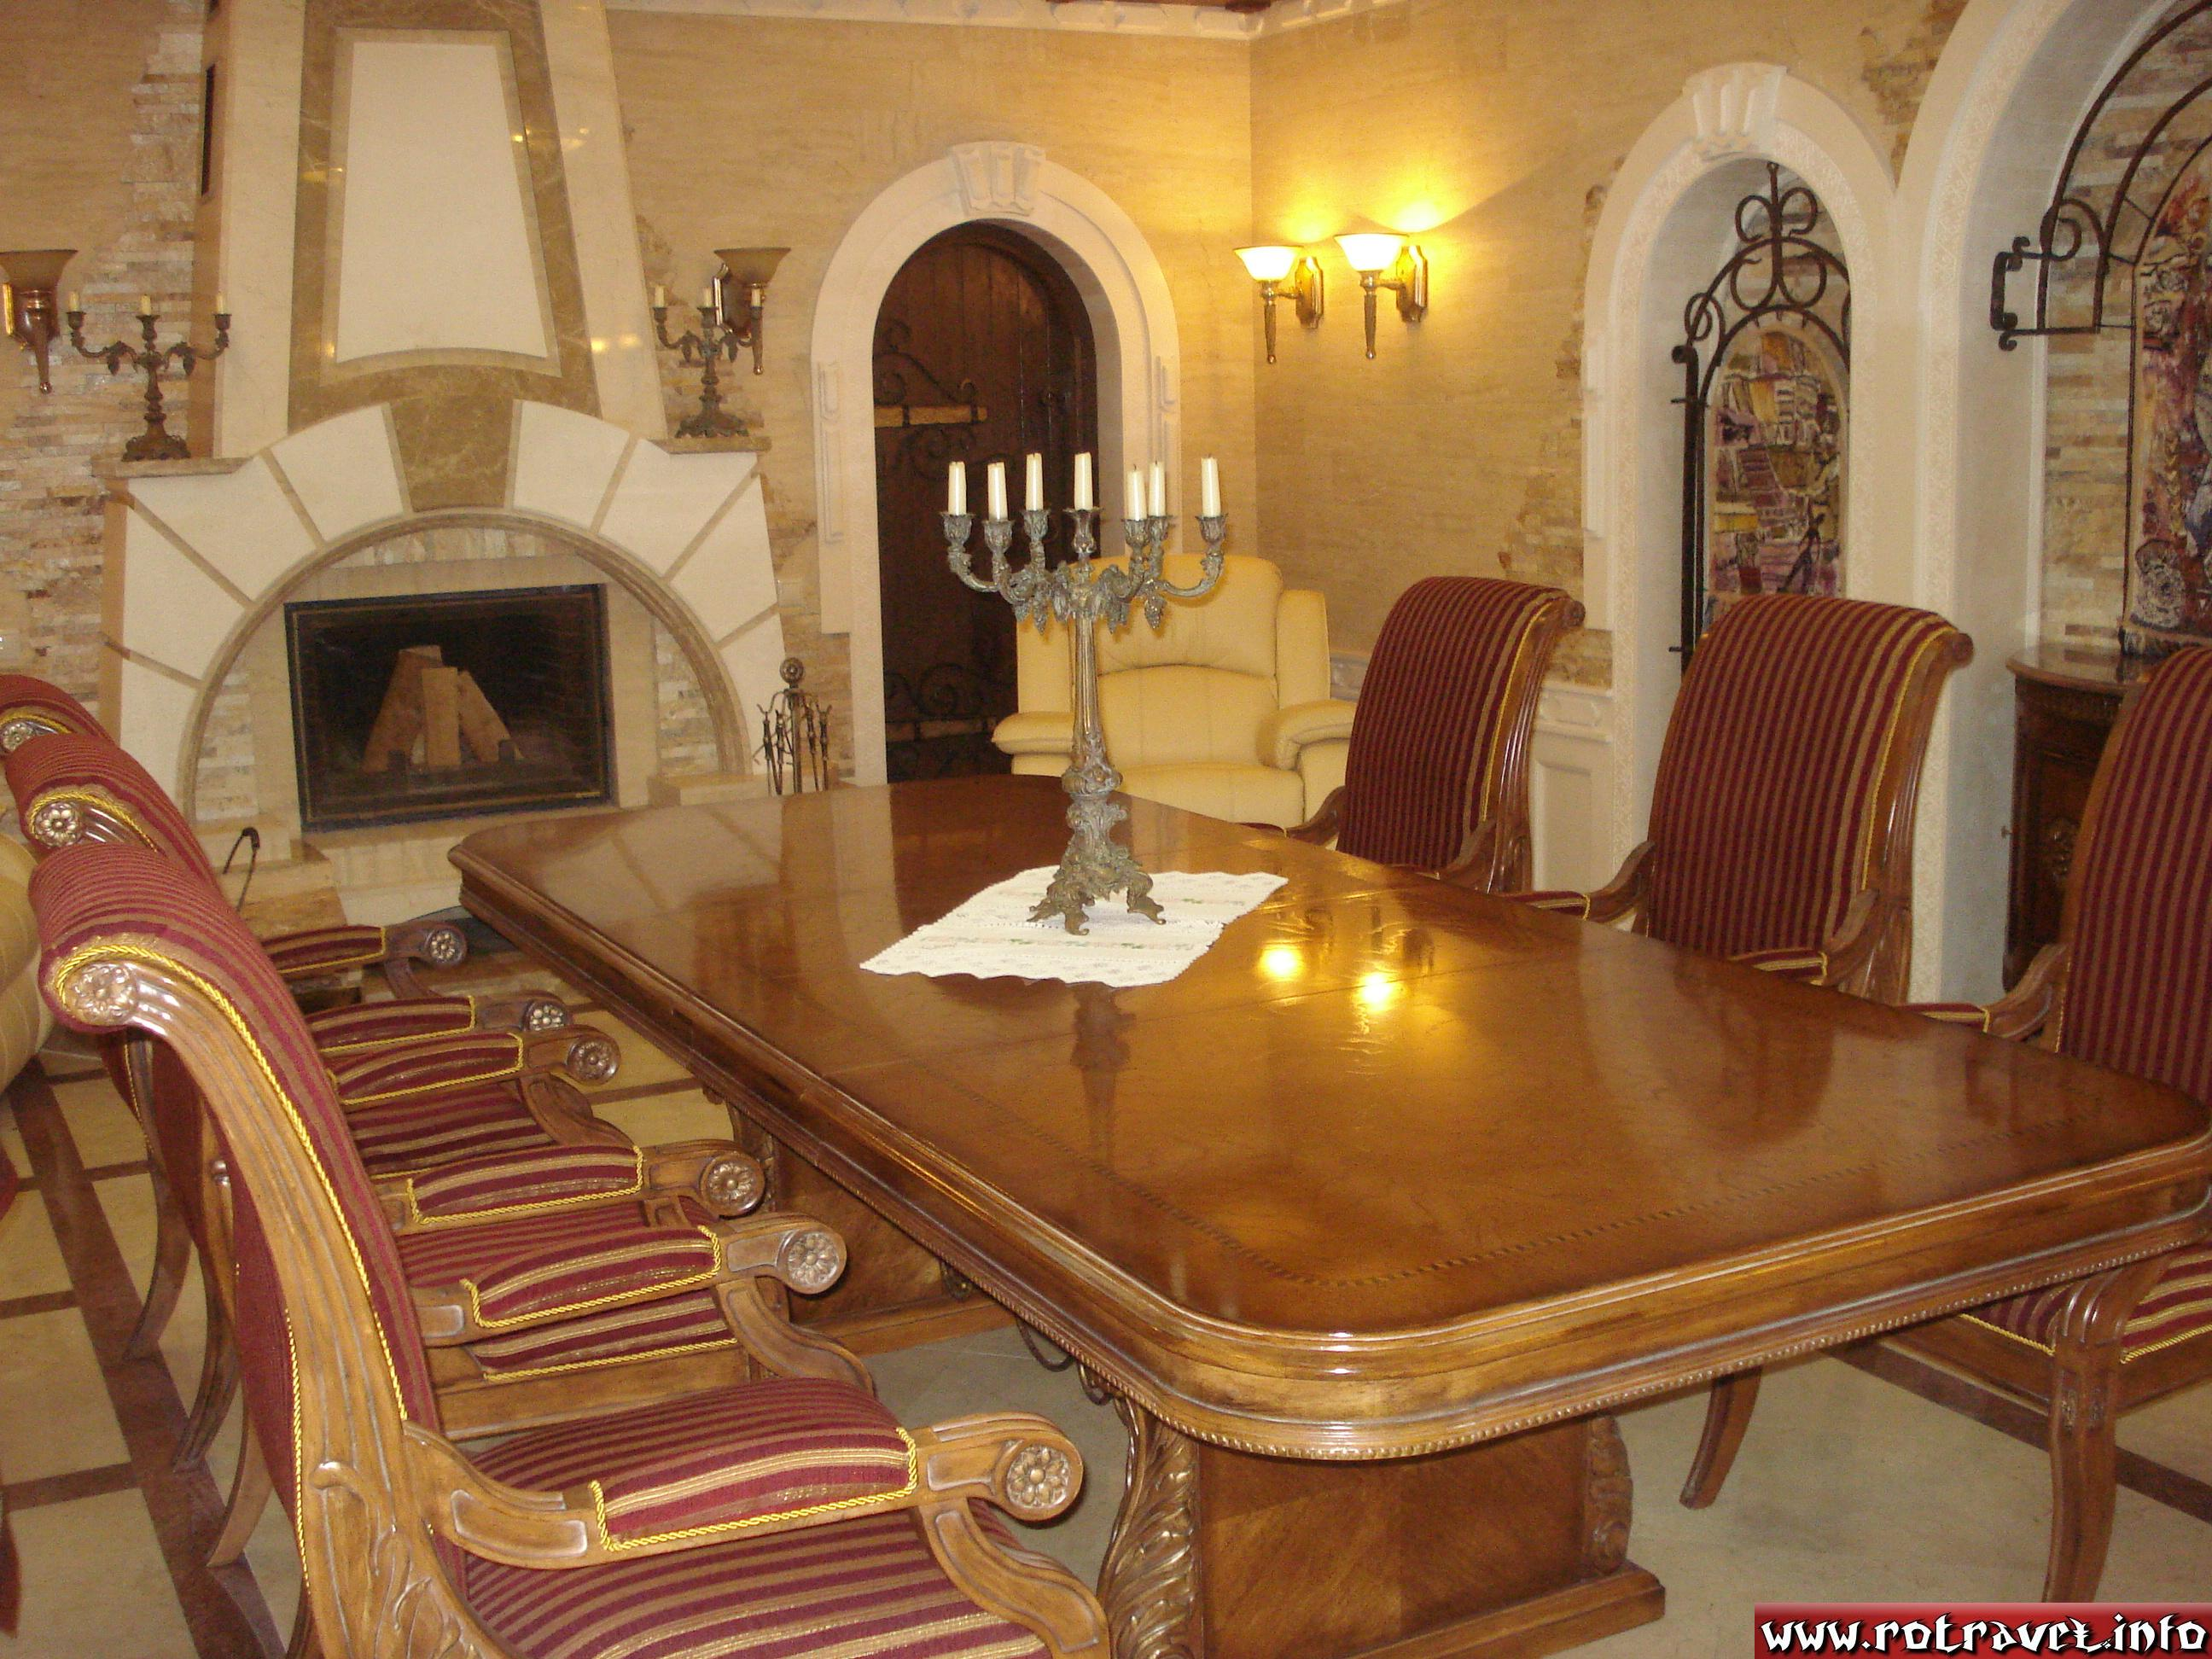 The favourite relaxing chamber from Cricova of the ex-president of Moldova, Vladimir Voronin.